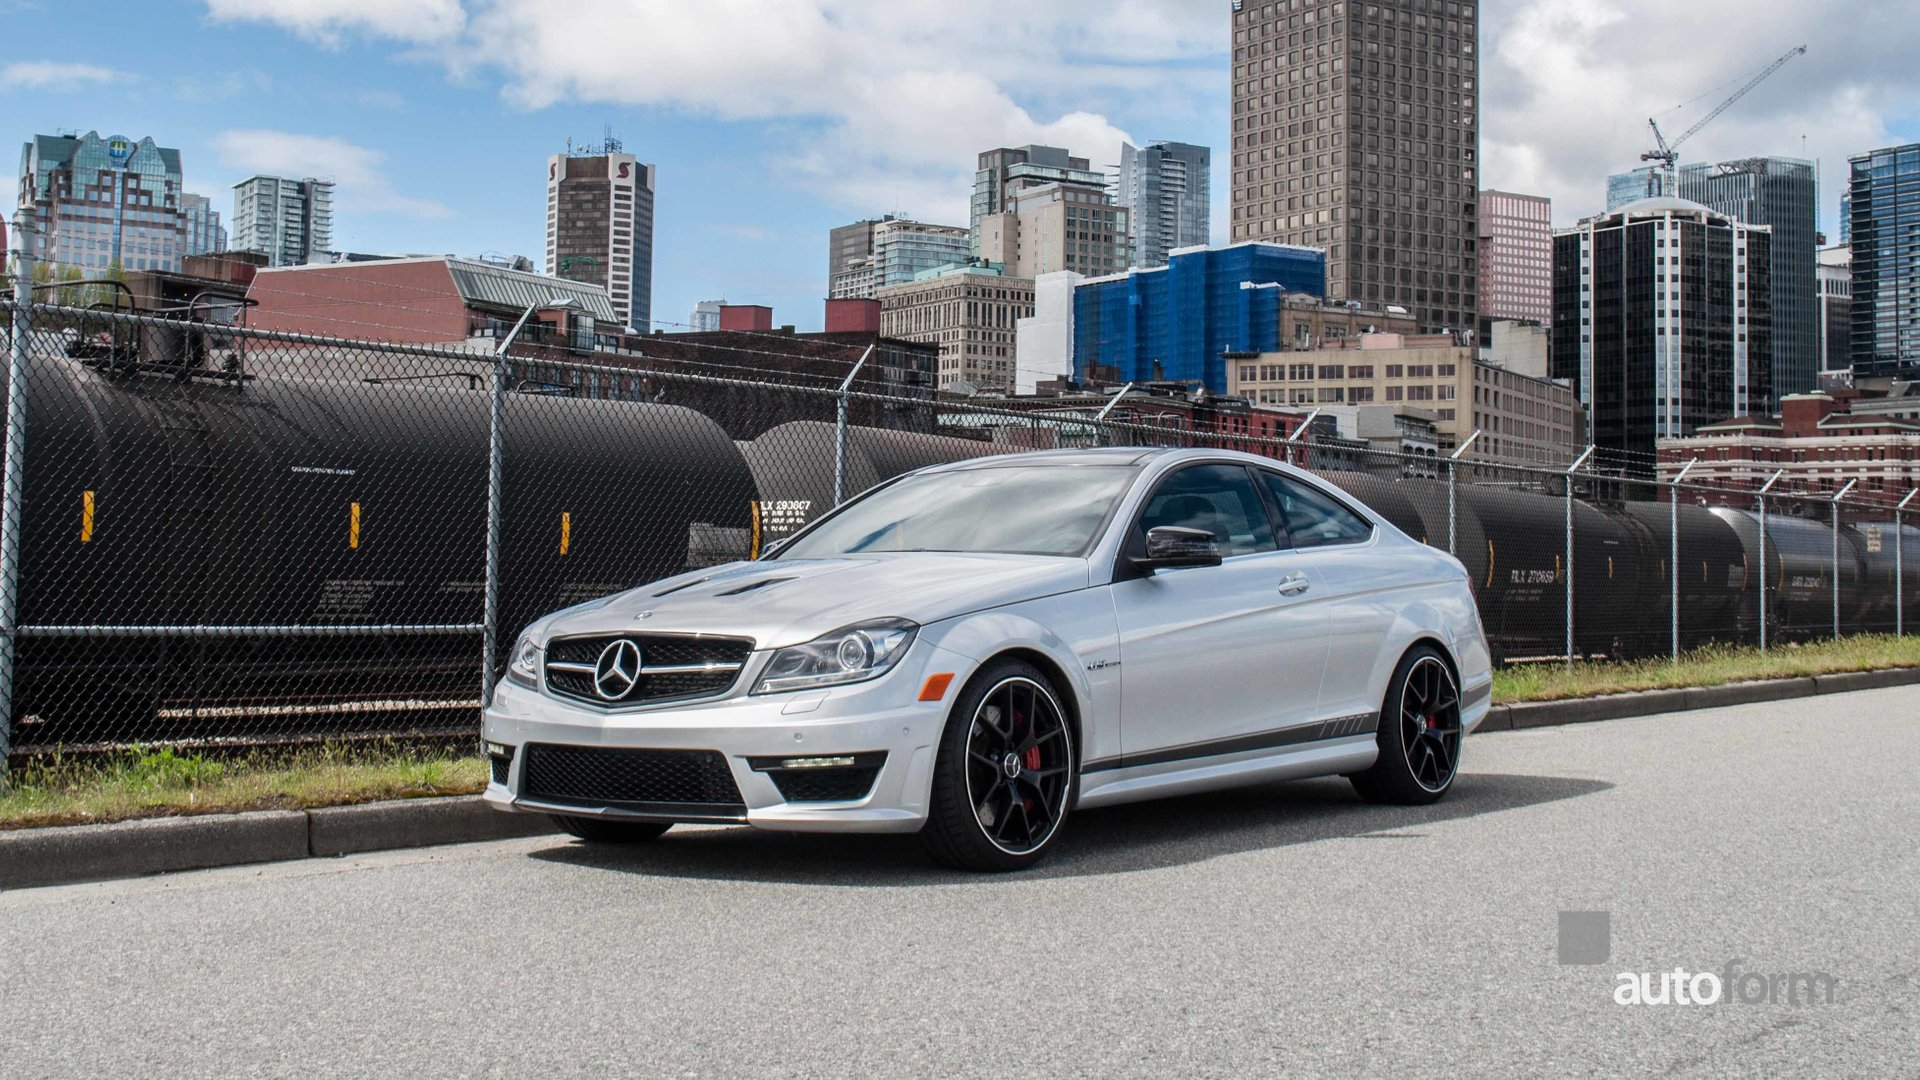 2014 mercedes benz c63 amg 507 edition